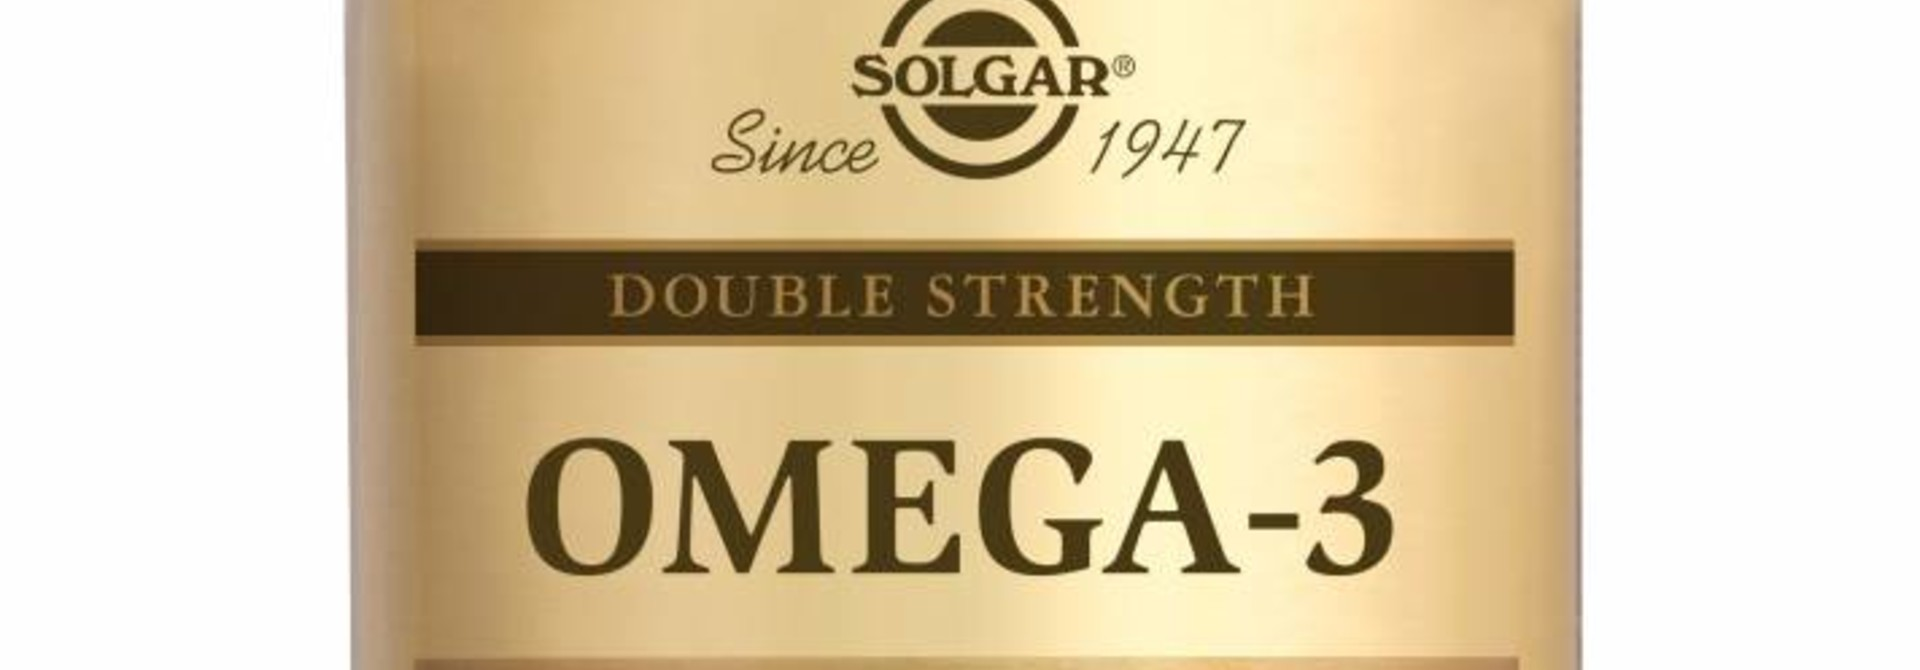 Omega-3 Double Strength 120 softgels